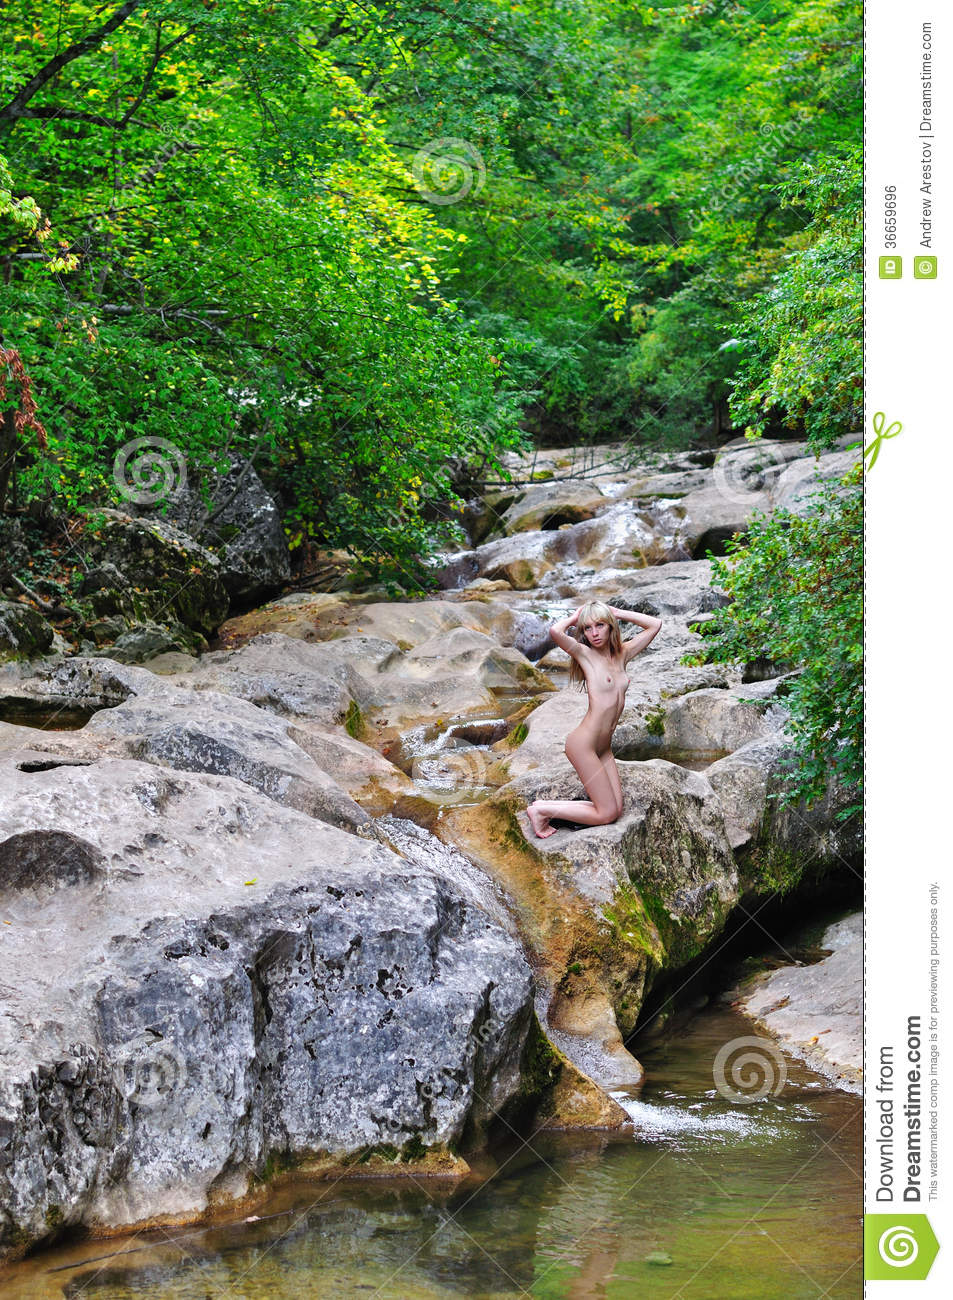 Naked by the stream